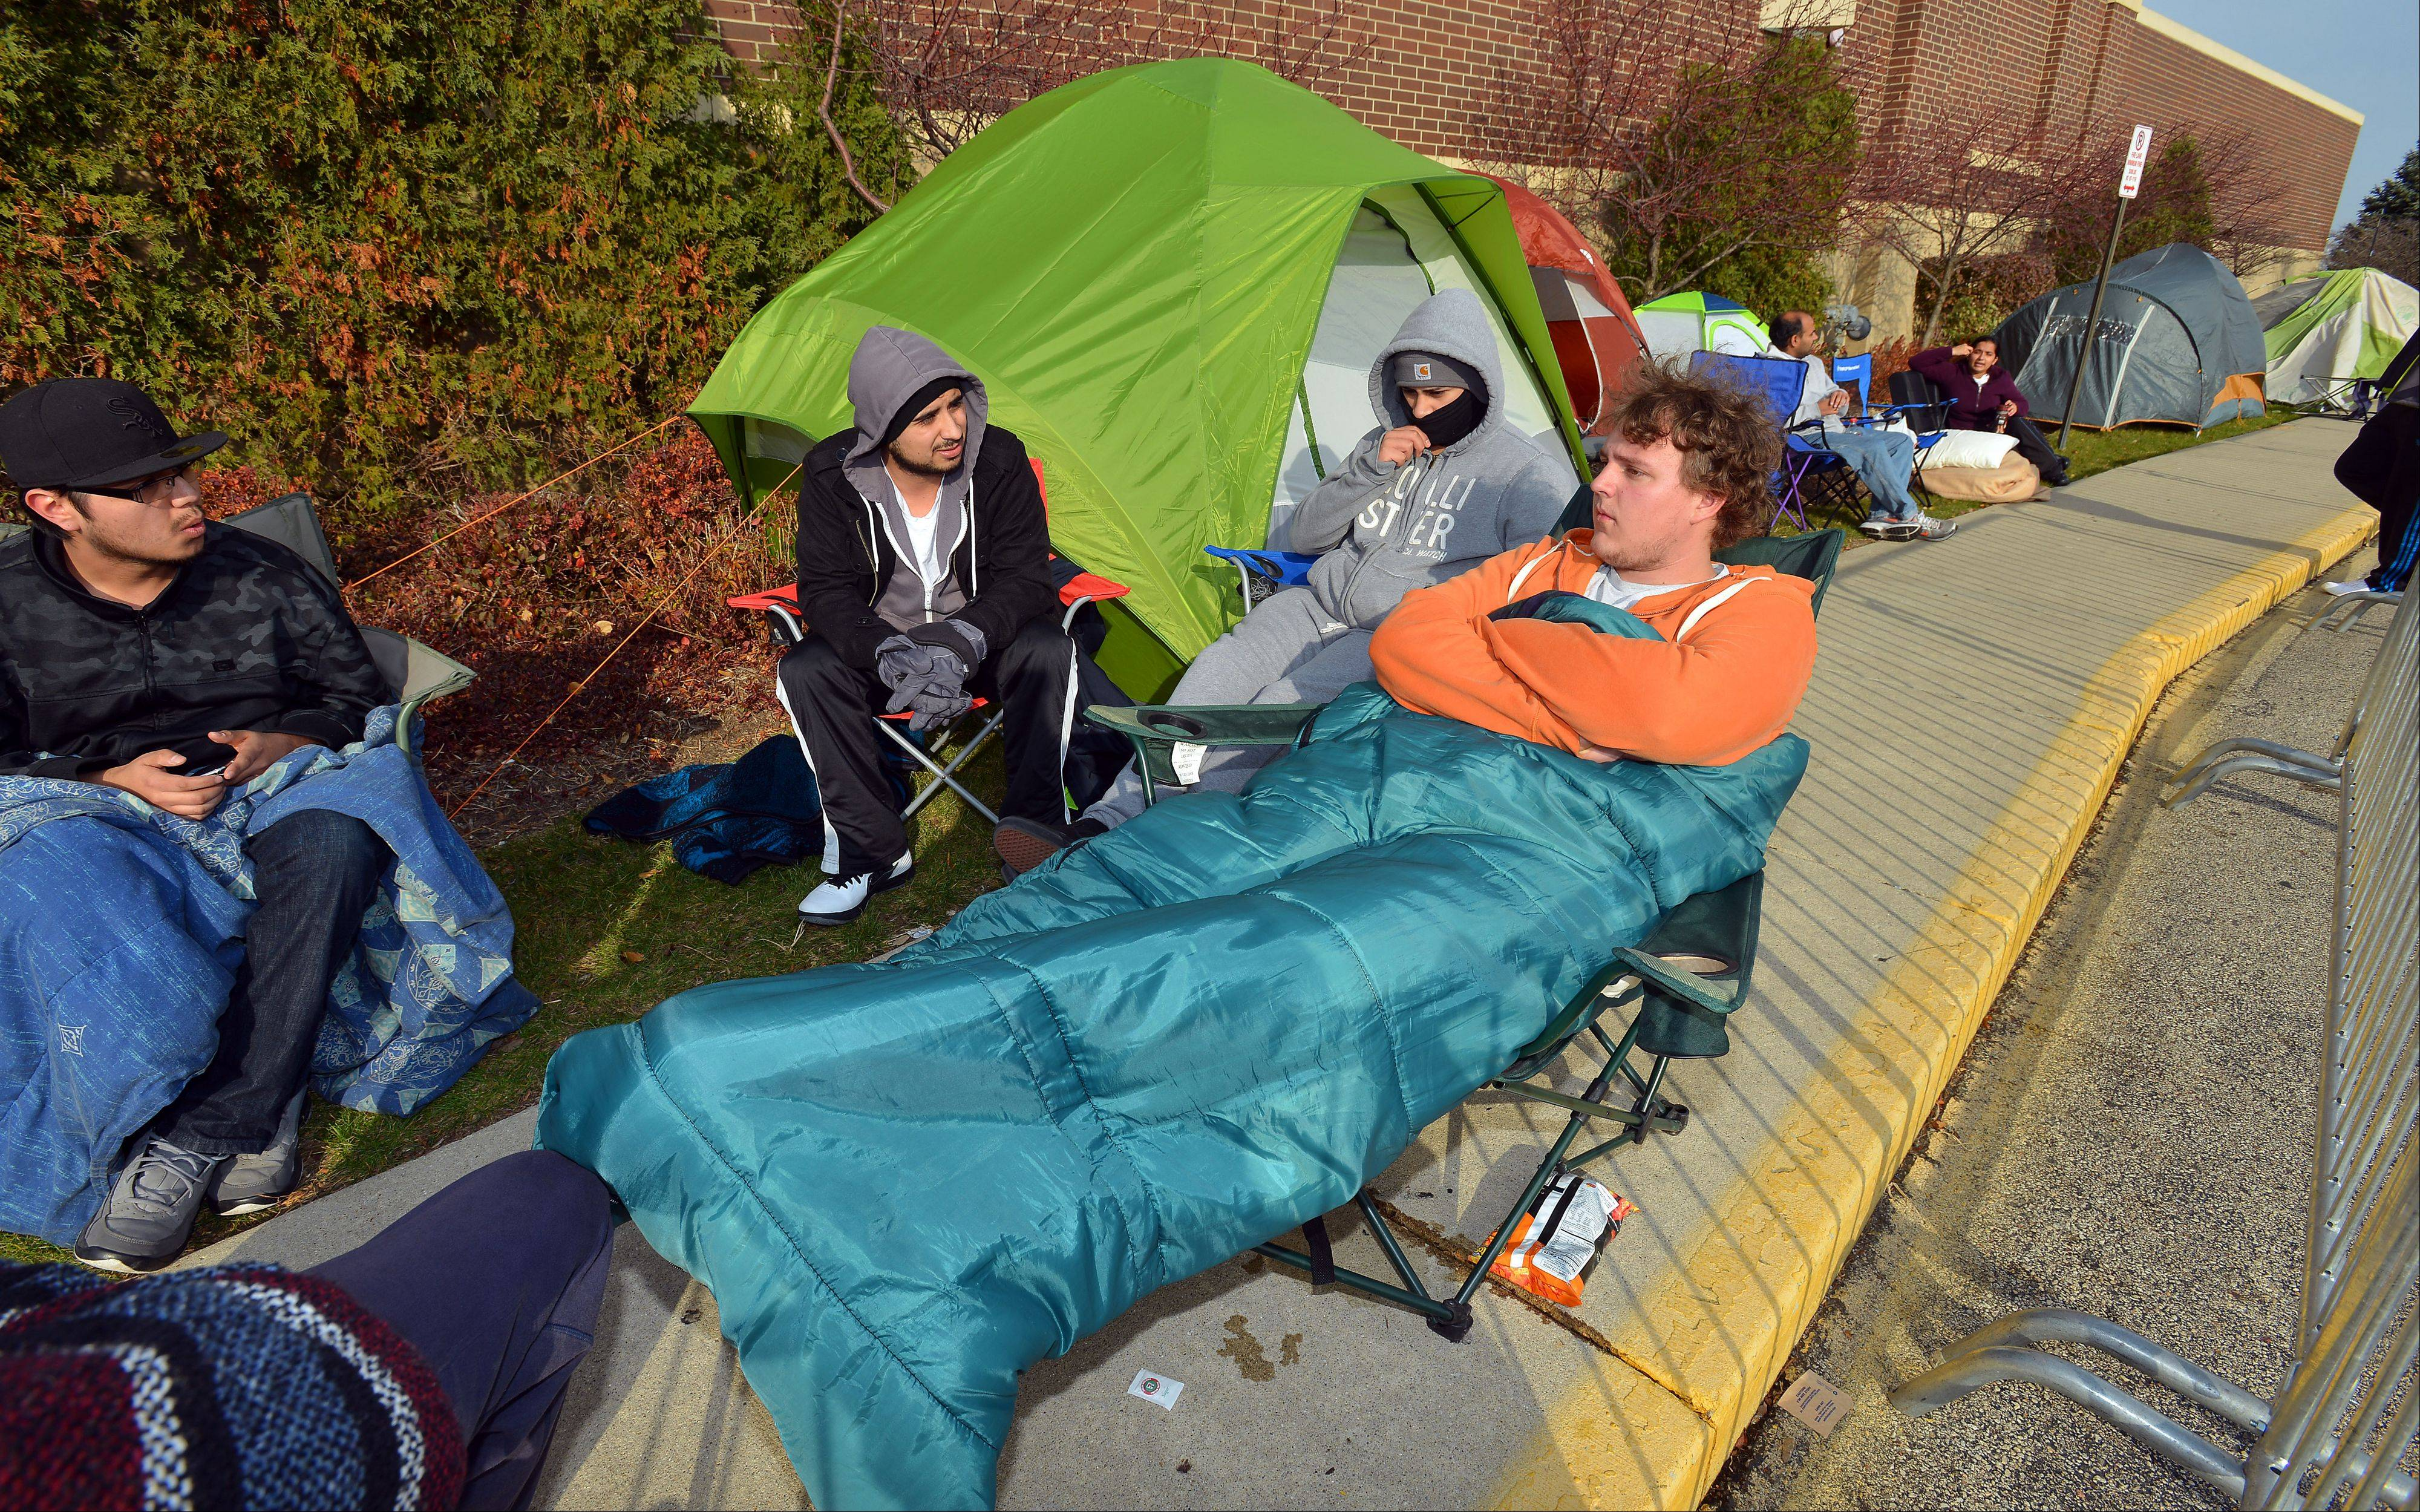 Tent city in front of the Best Buy in Schaumburg popped up at 12 a.m. on Tuesday. Matt Runowski, 20, of Streamwood keeps warm in his sleeping bag with the rest of his friends as they try to get their hands on Best Buy's Black Friday deal, a 40-inch flat screen TV for $179.99.